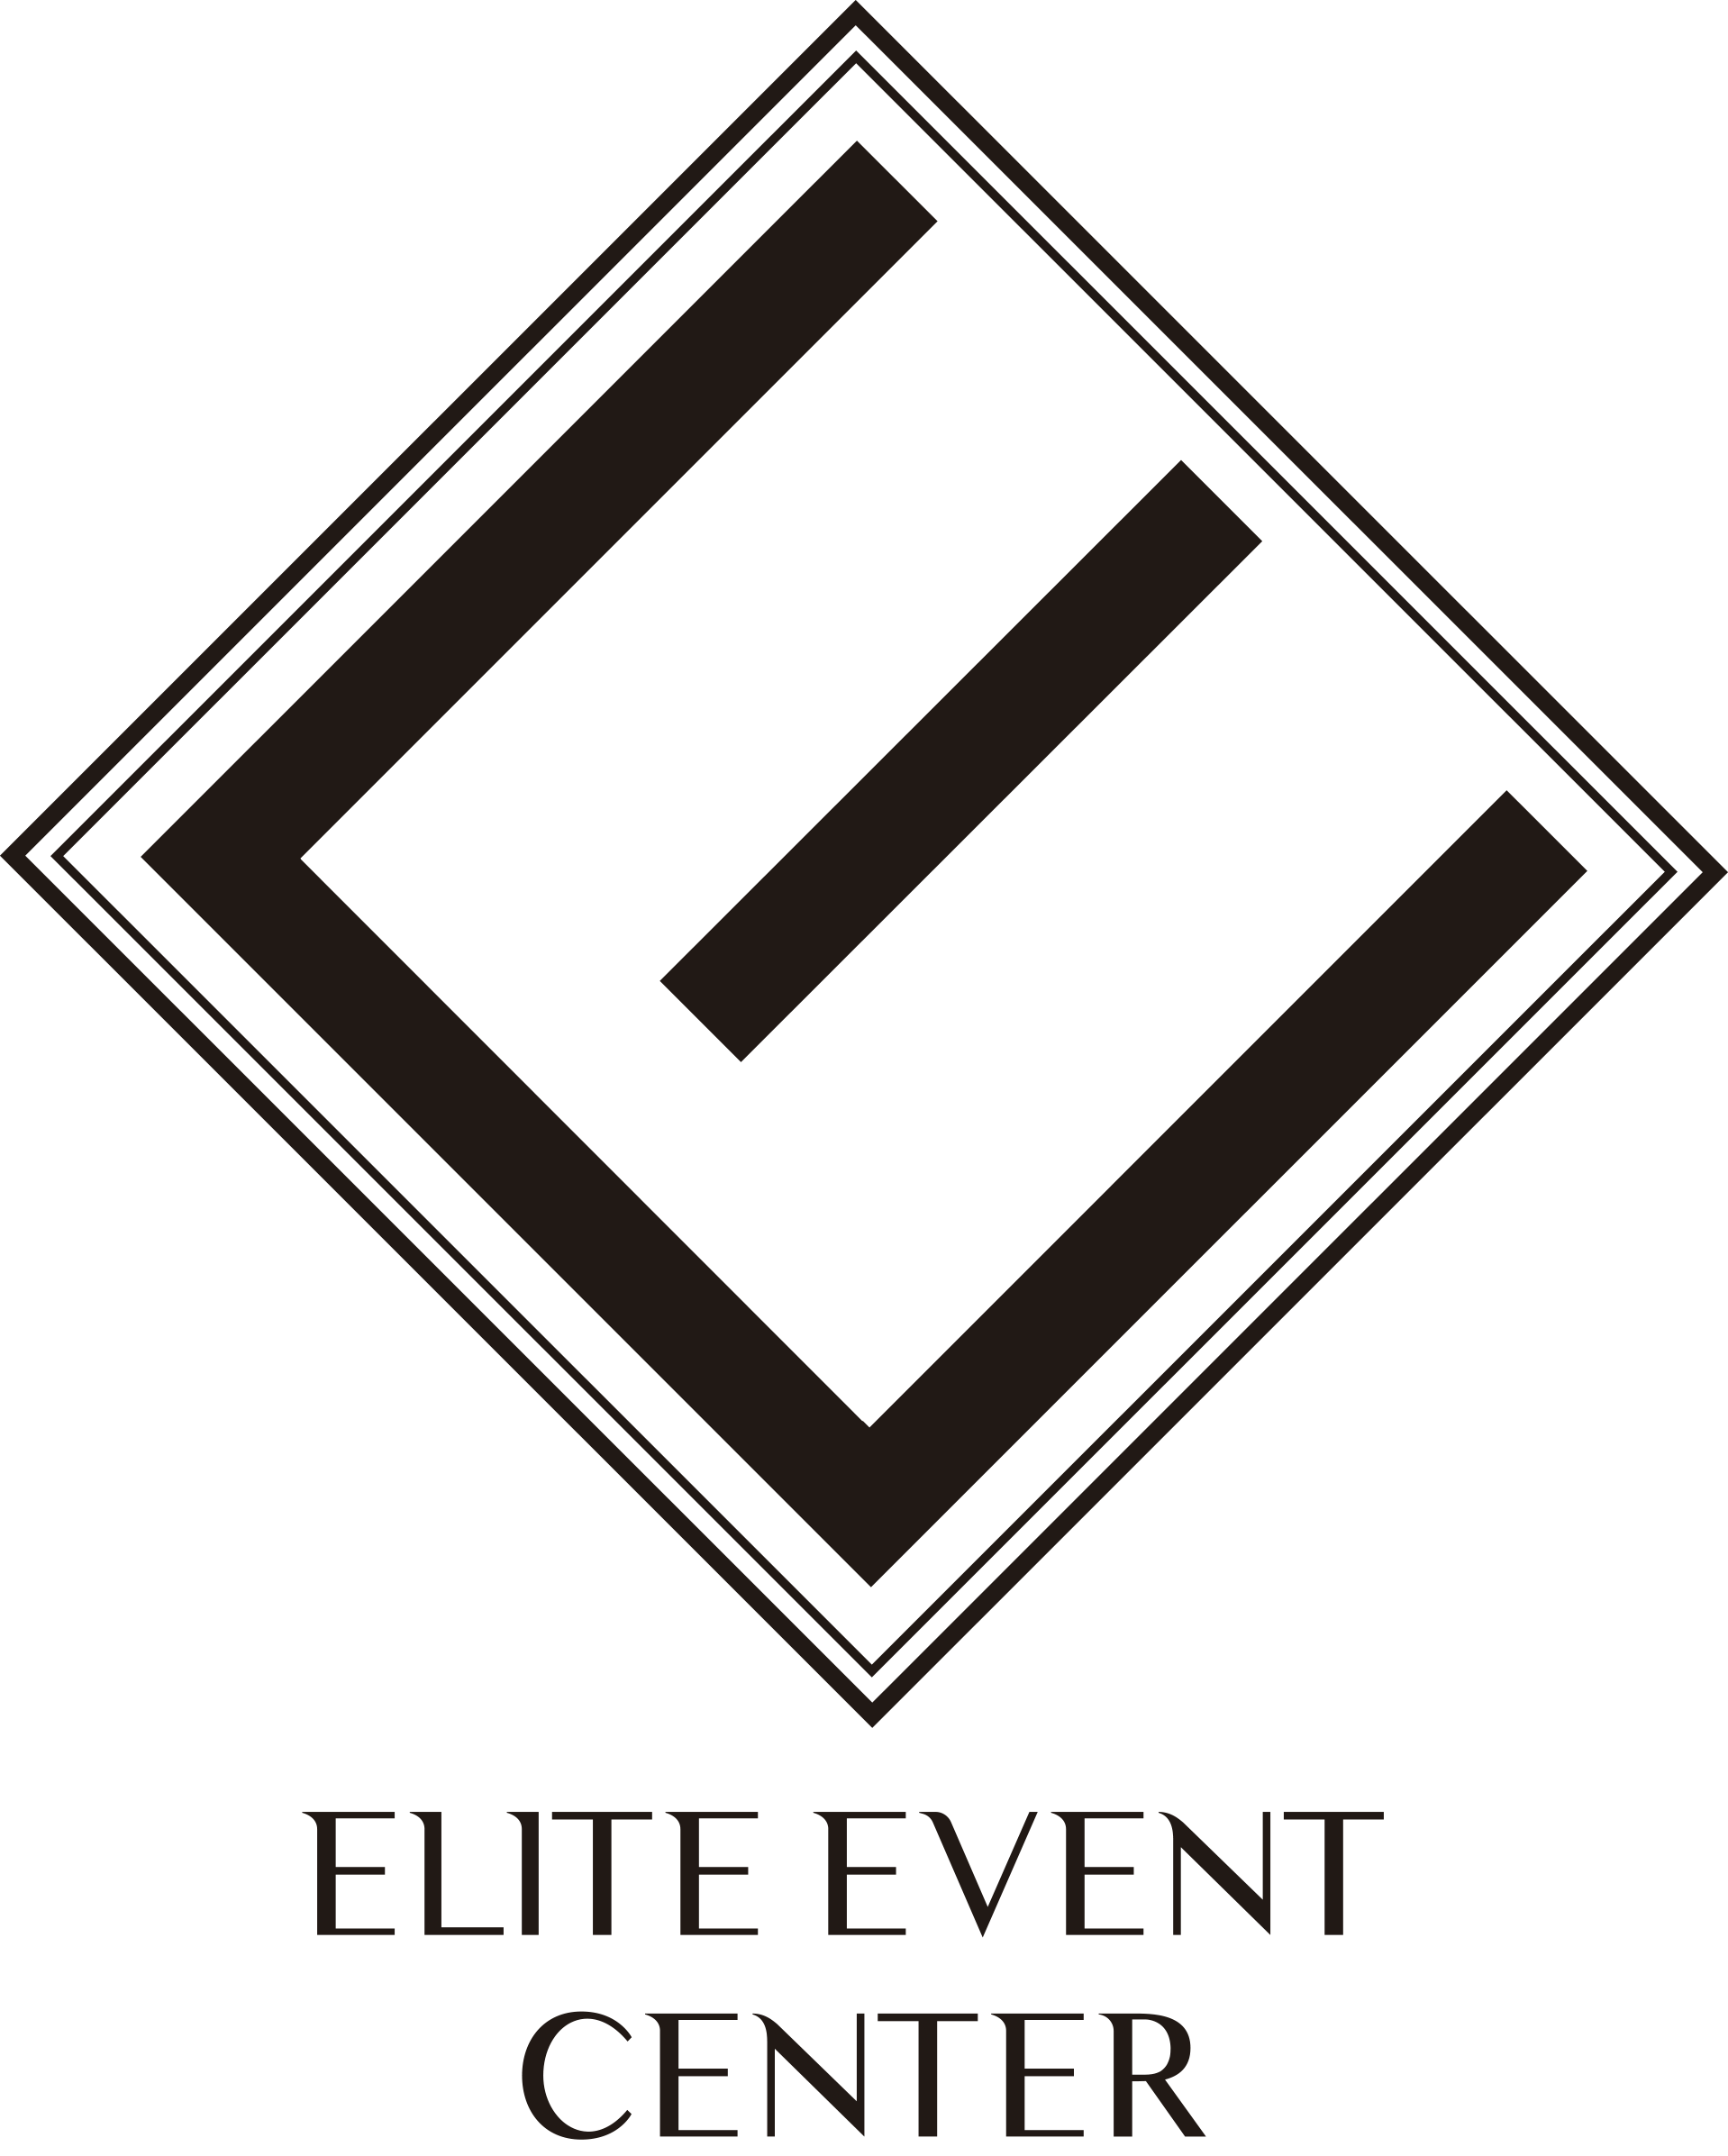 Elite Event Center